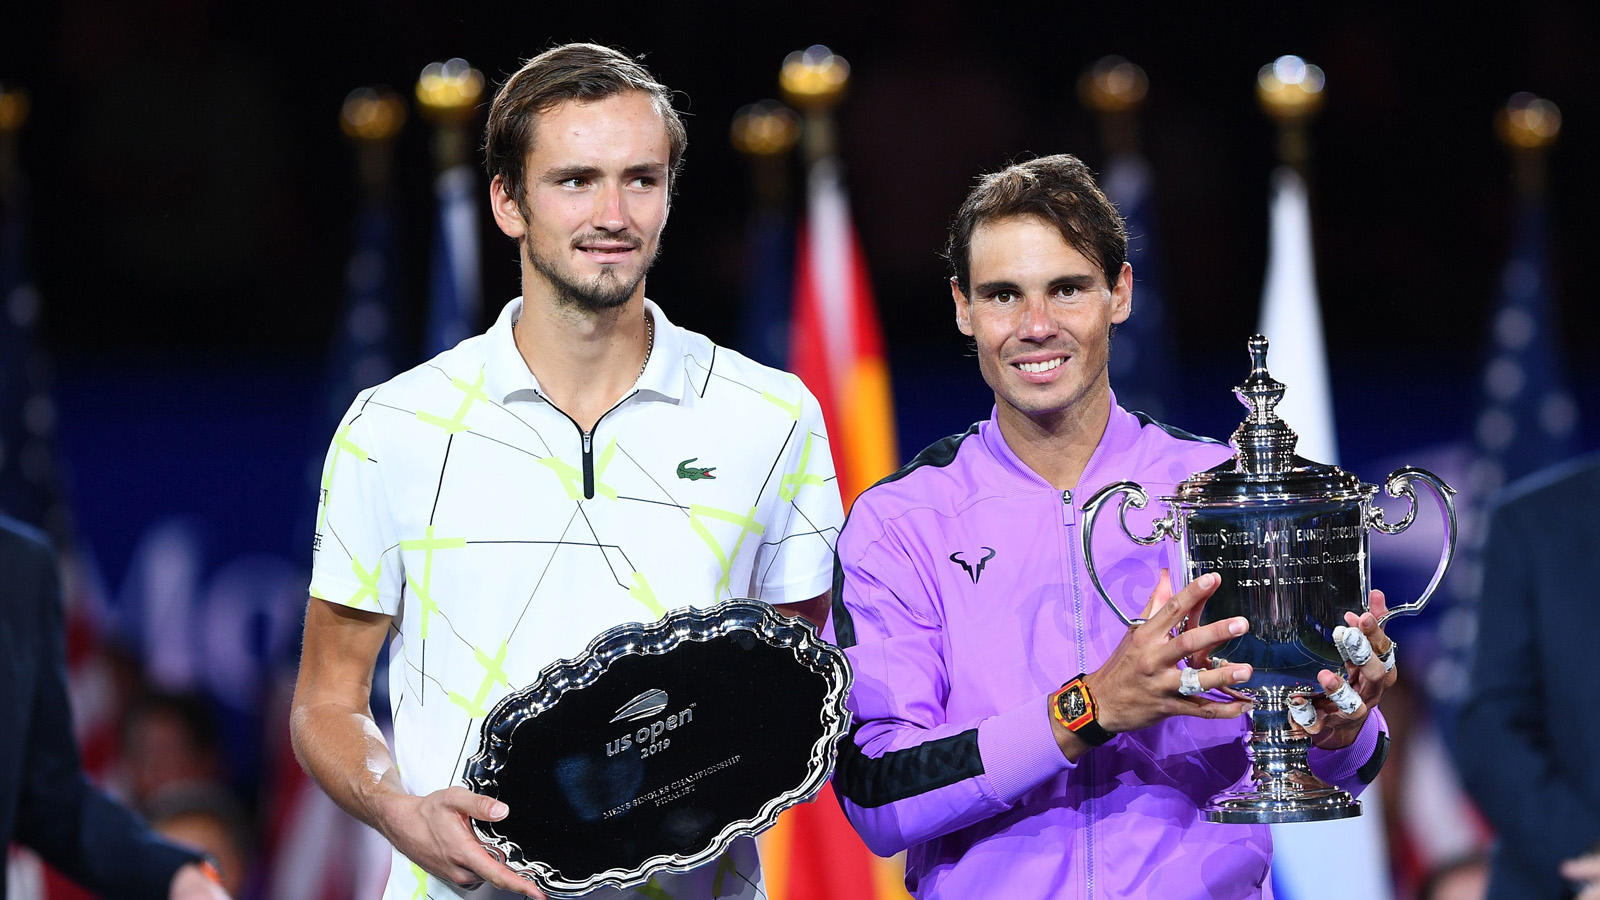 rafael-nadal-edges-daniil-medvedev-for-4th-us-open-title-19th-slam-trophy